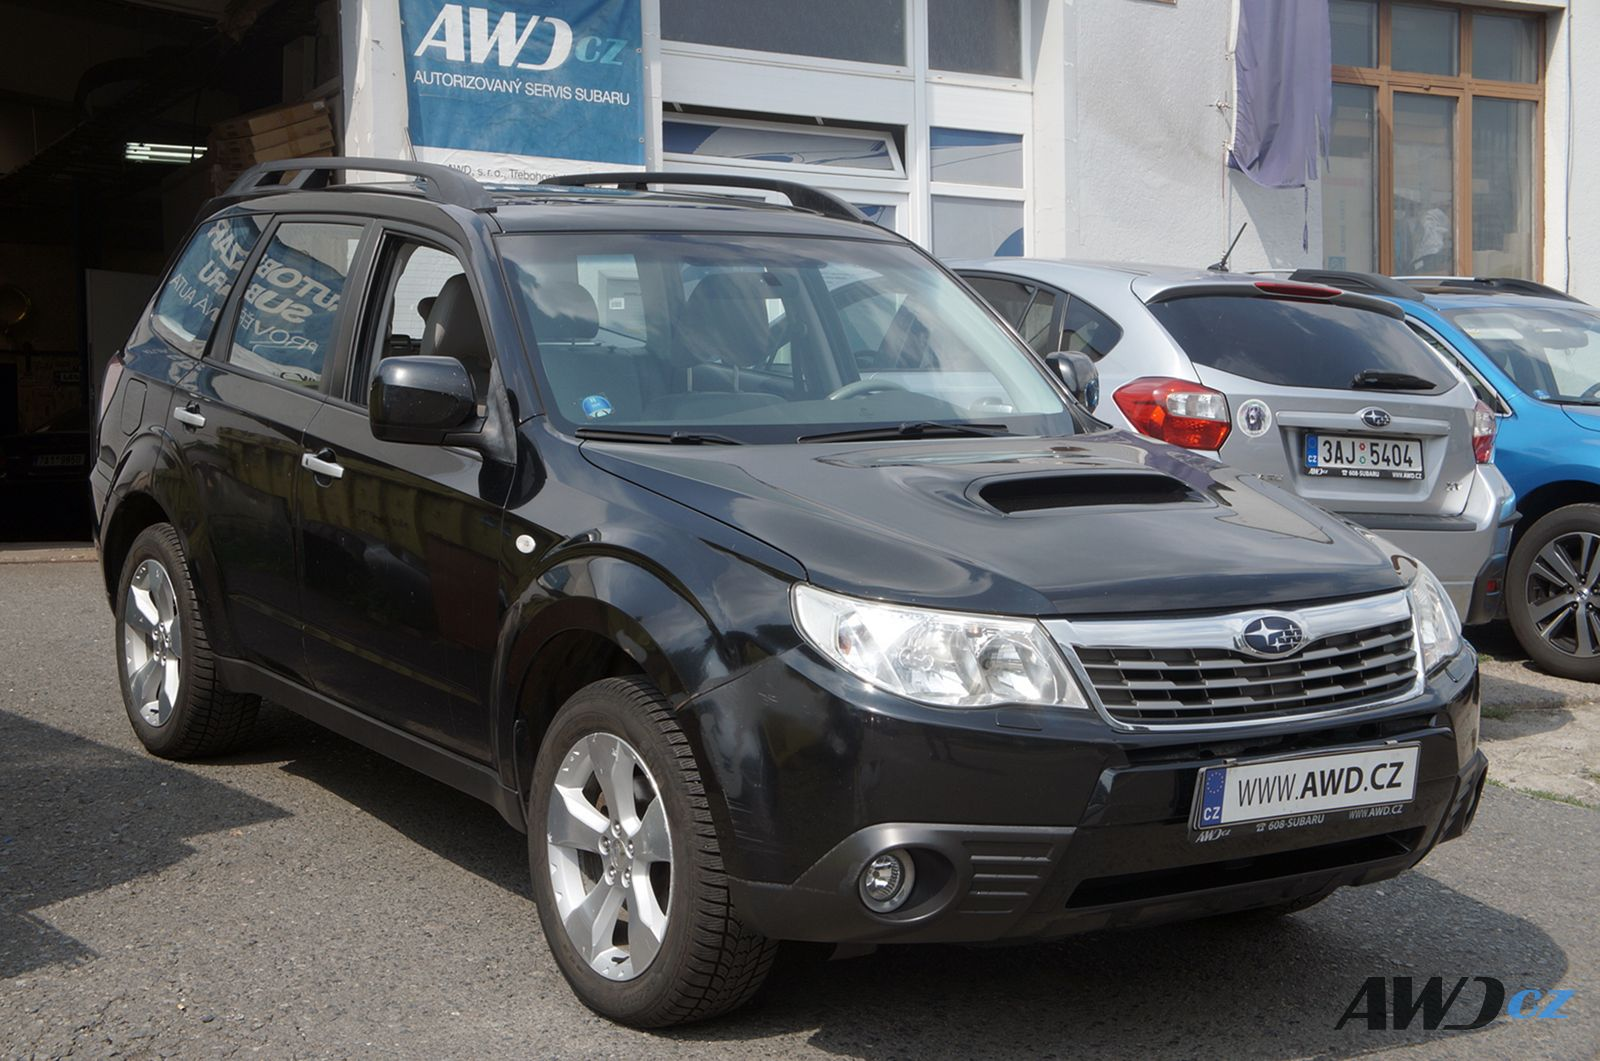 SUBARU Forester 2.5XT Executive MY2010, 229900Kč, 202000 km, 2010